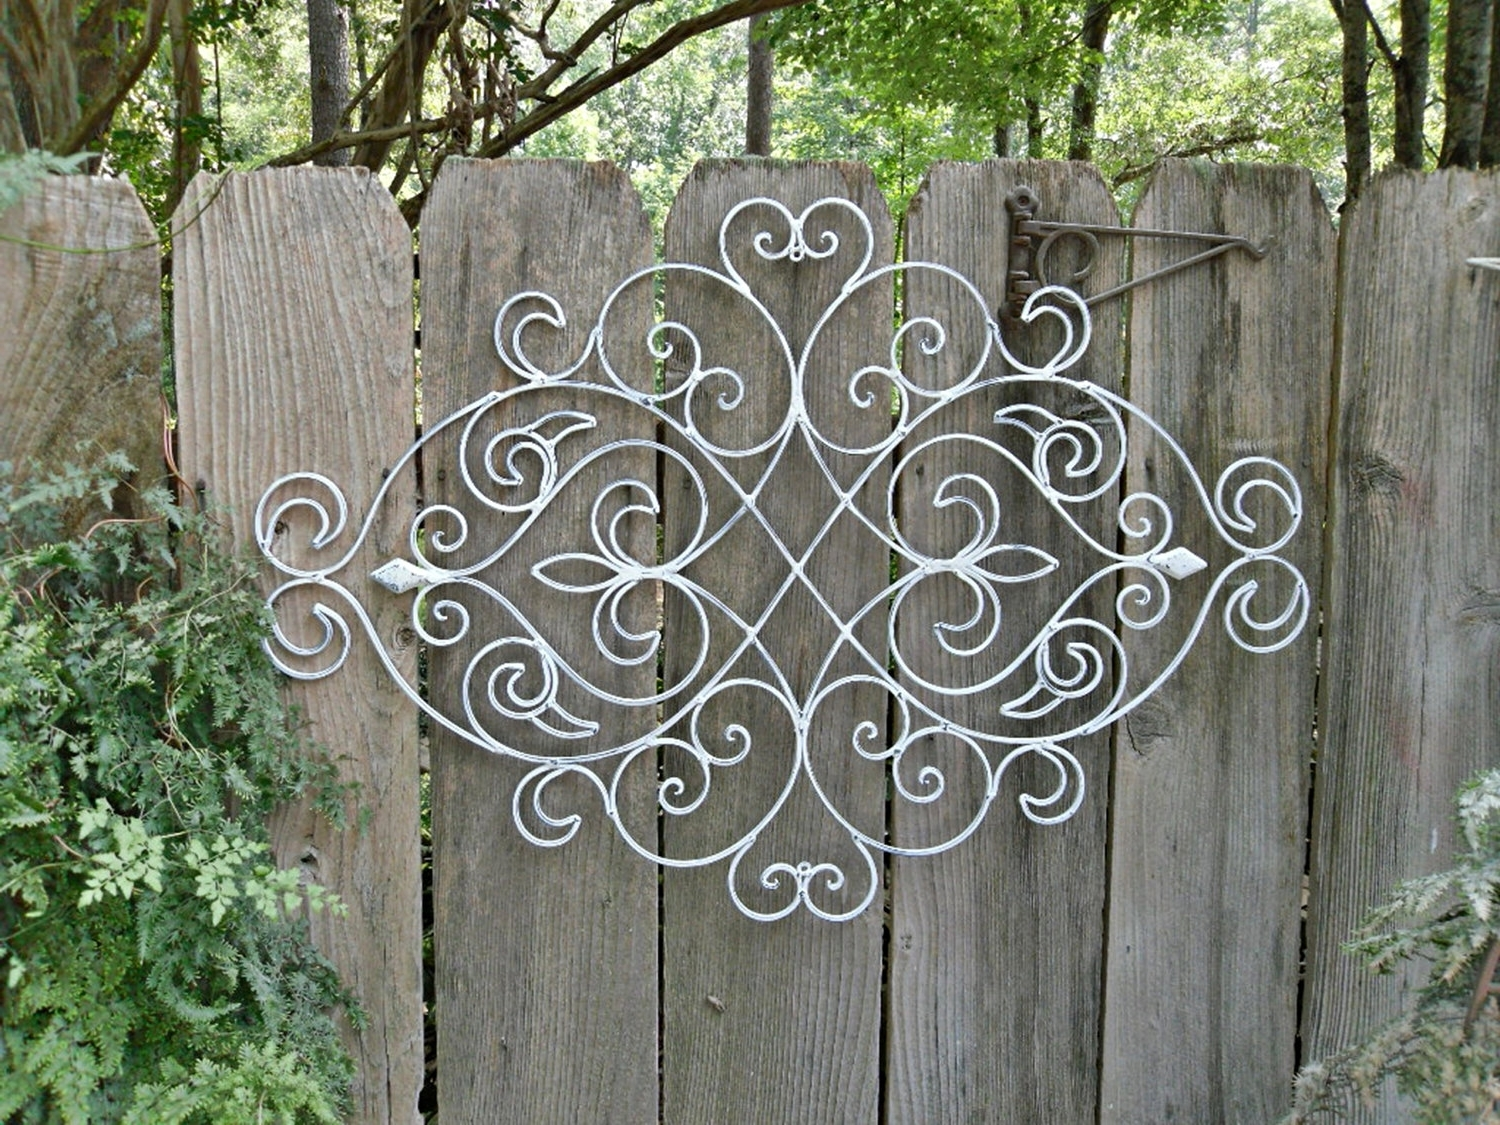 Newest Discount Outdoor Metal Wall Art Decor — Joanne Russo Homesjoanne Regarding Metal Gate Wall Art (View 13 of 15)